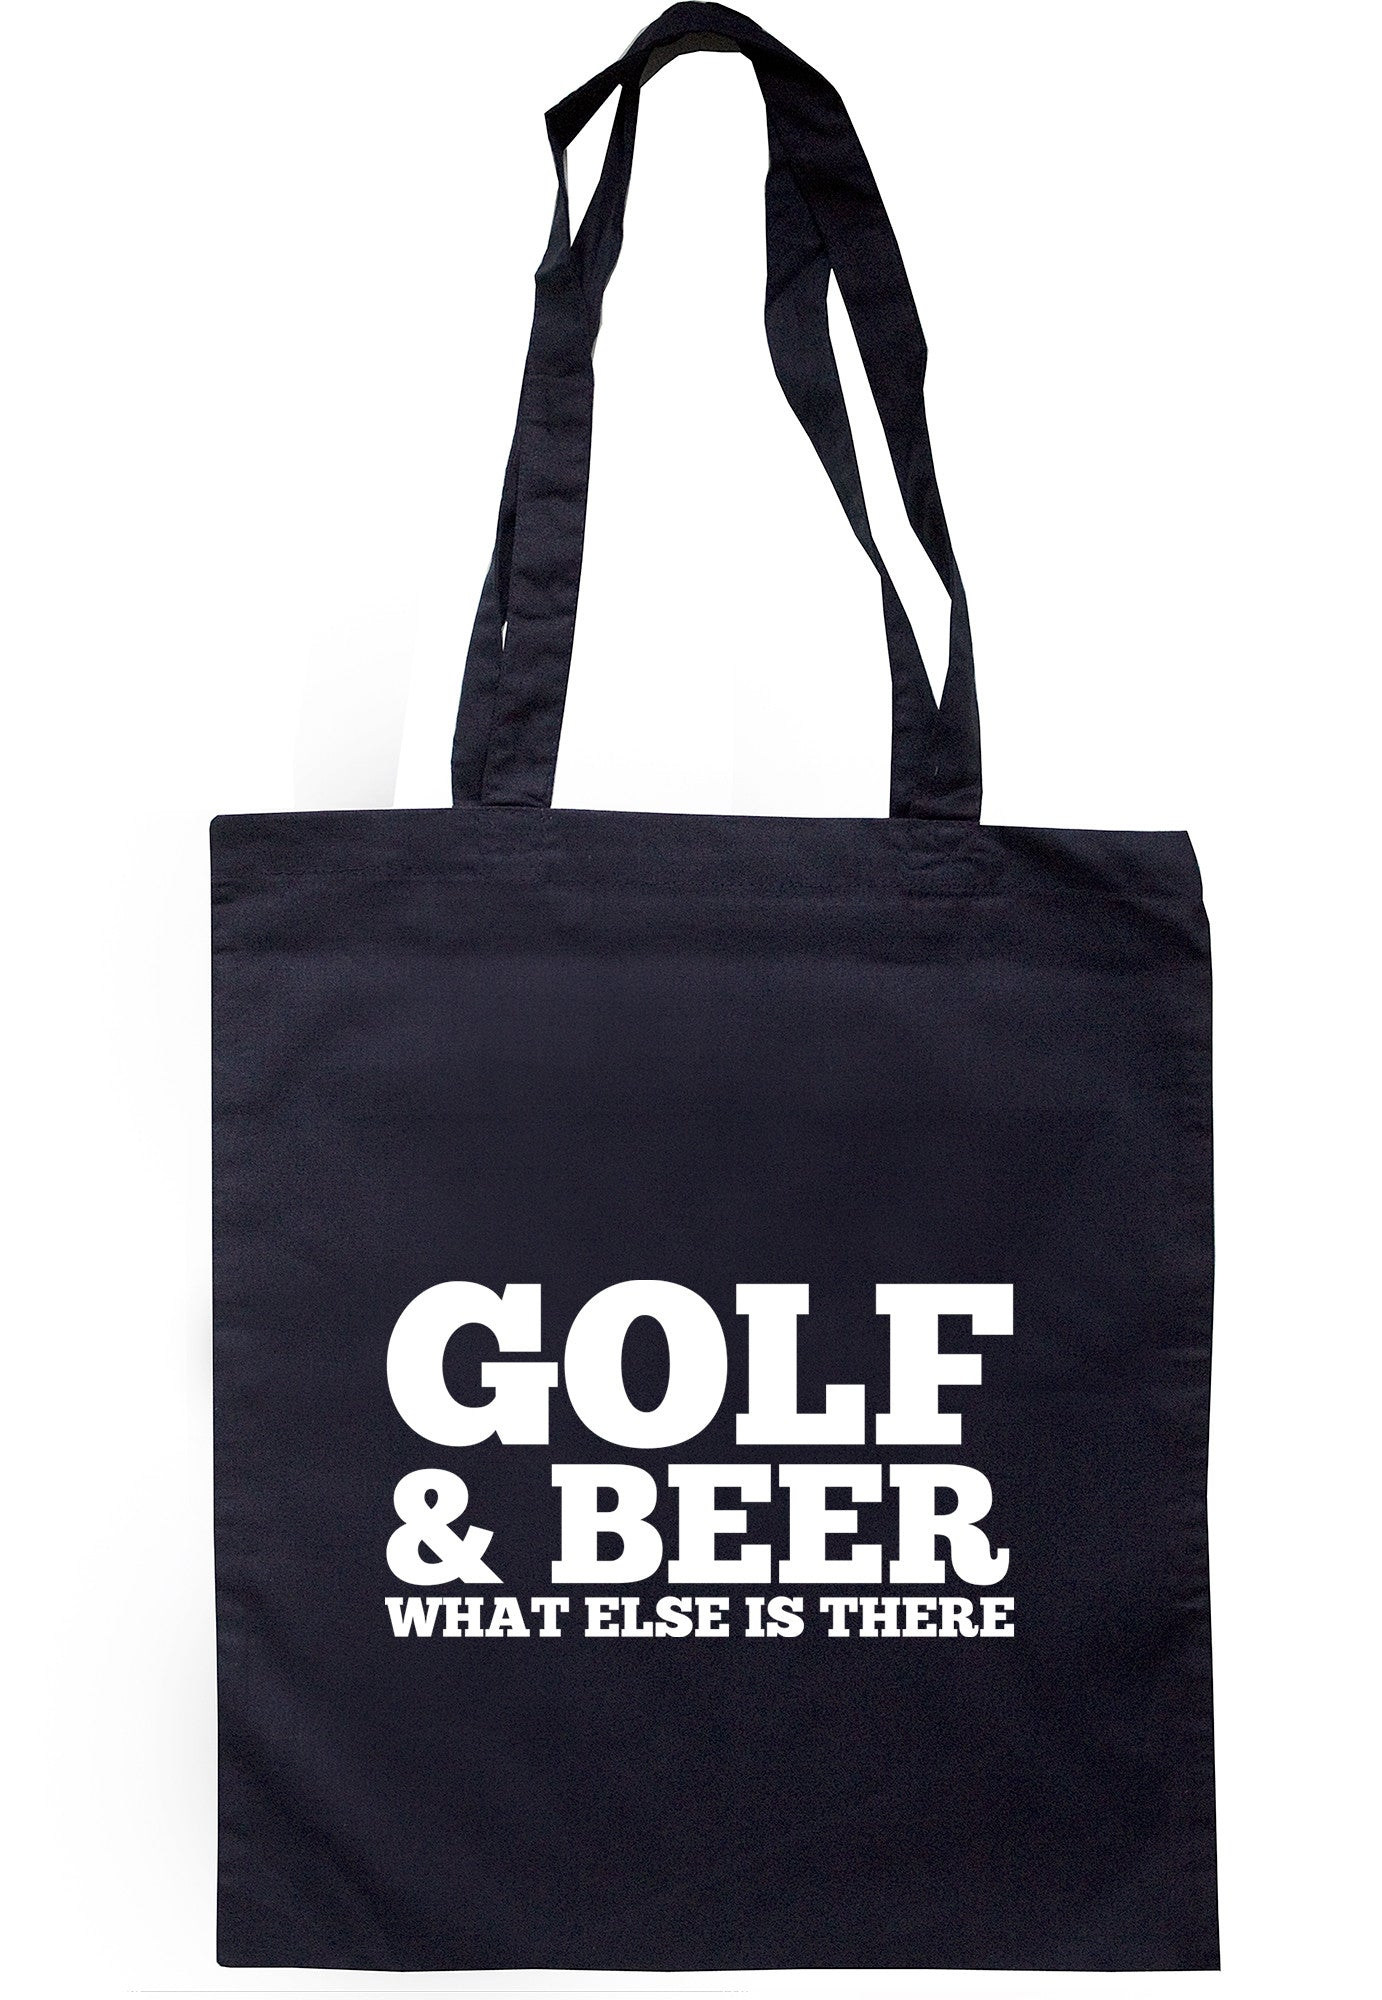 Golf & Beer What Else Is There Tote Bag TB0464 - Illustrated Identity Ltd.